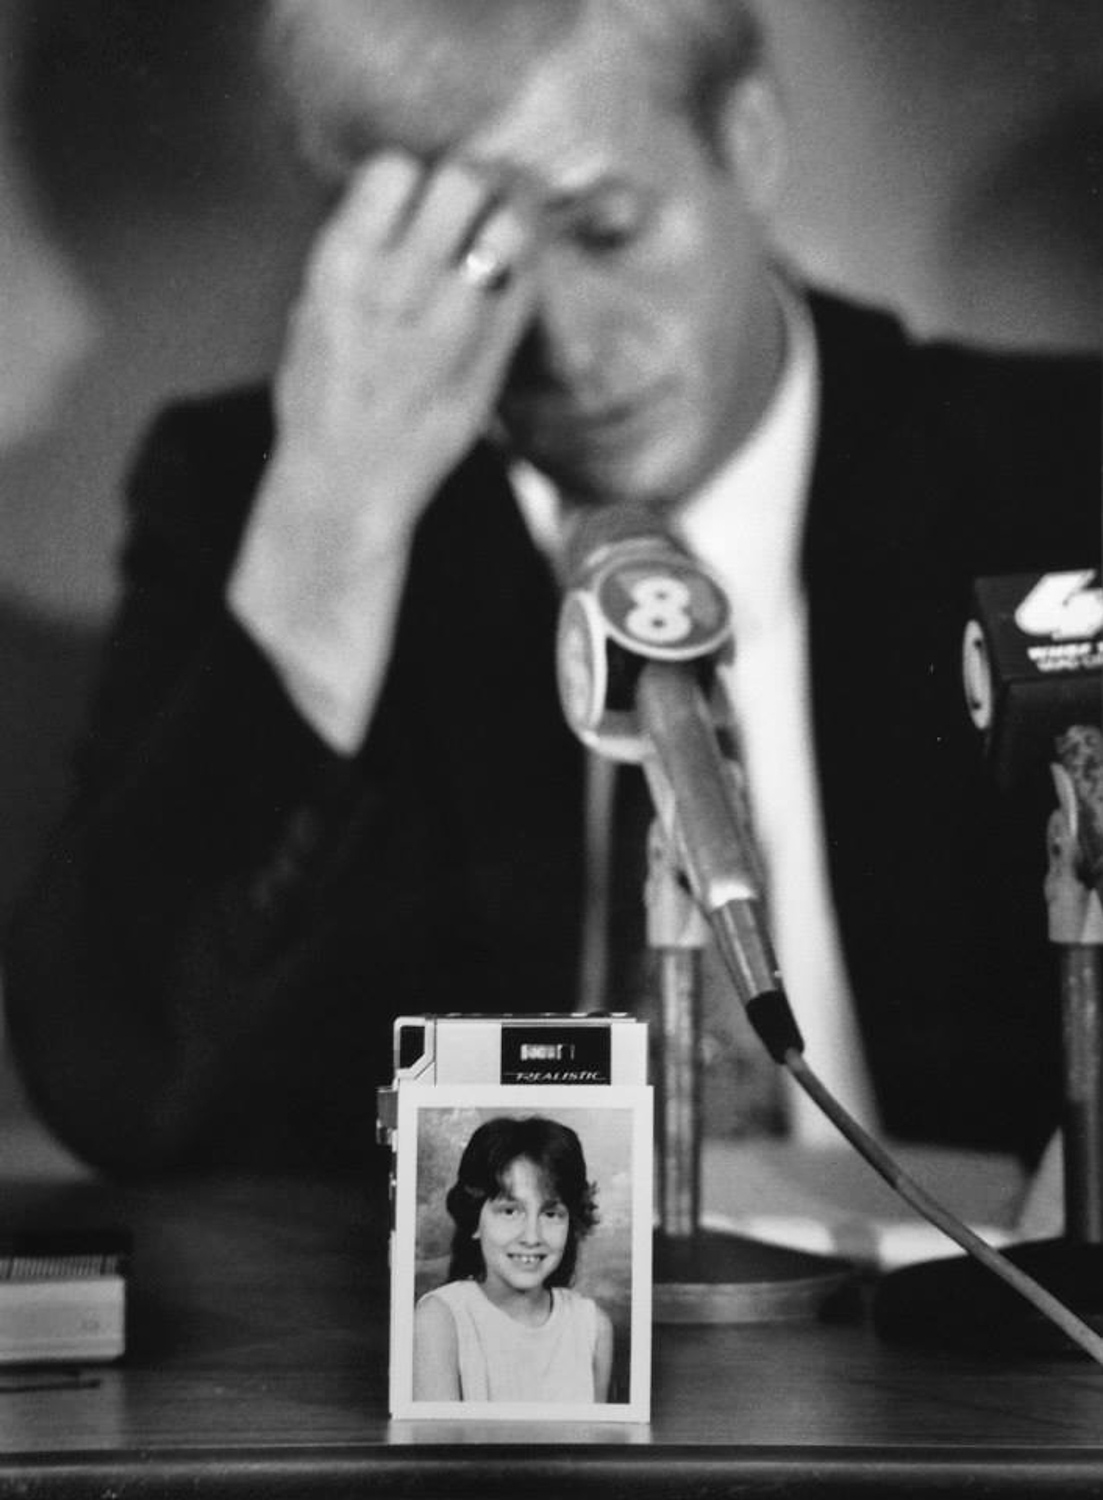 The school photo of murder victim Jennifer Ann Lewis rests against a reporter's tape recorder as Davenport investigator Don Schaeffer pauses to collect himself while discussing the details of the case. The smoldering body of the 9-year-old, from Rock Island, Illinois,  was found the night before near Jefferson Elementary School in Davenport, Iowa.